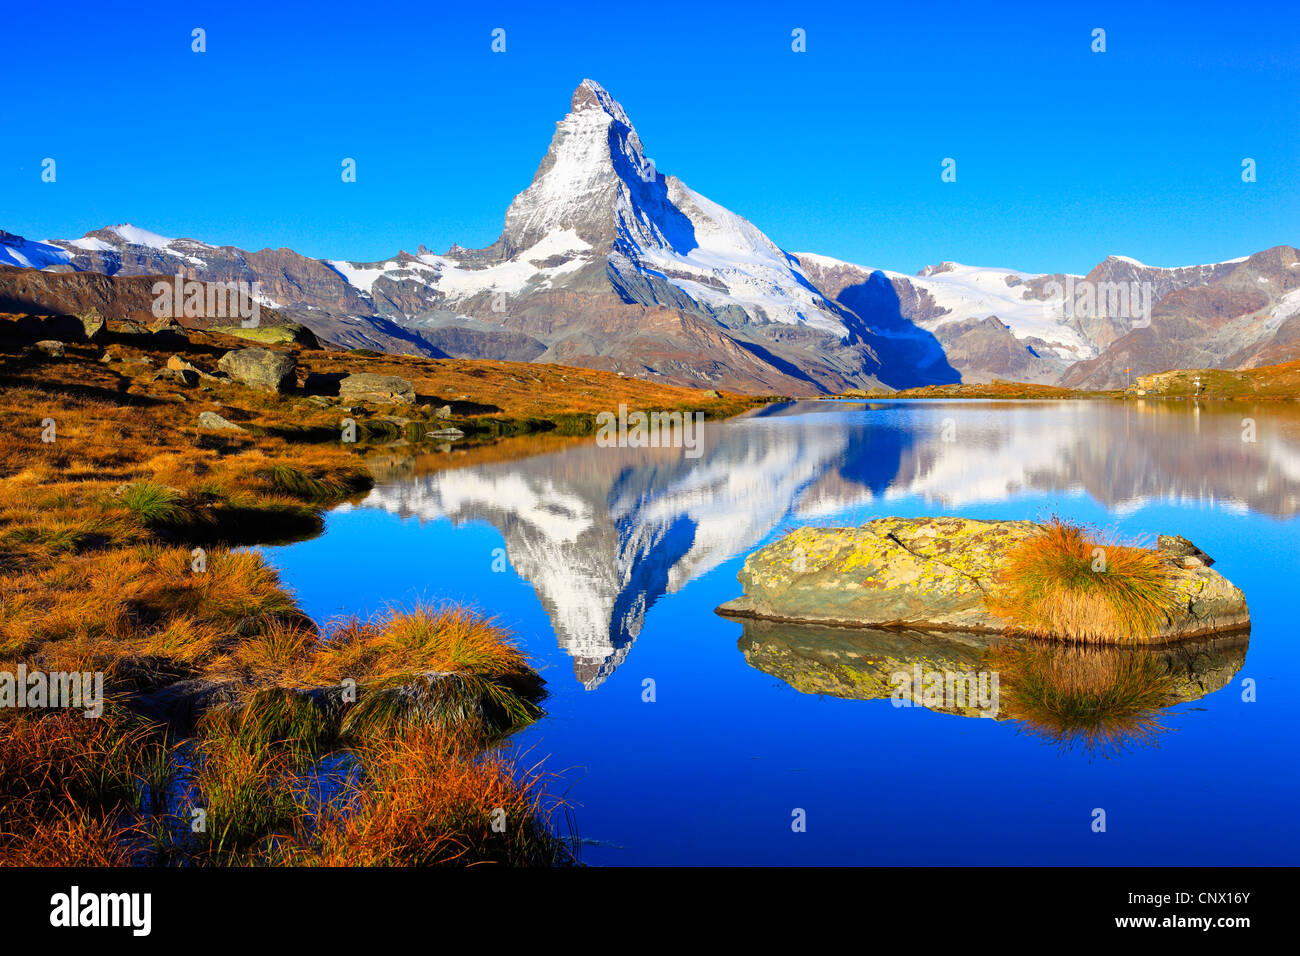 view from a mountain lake at the matterhorn under clear blue sky